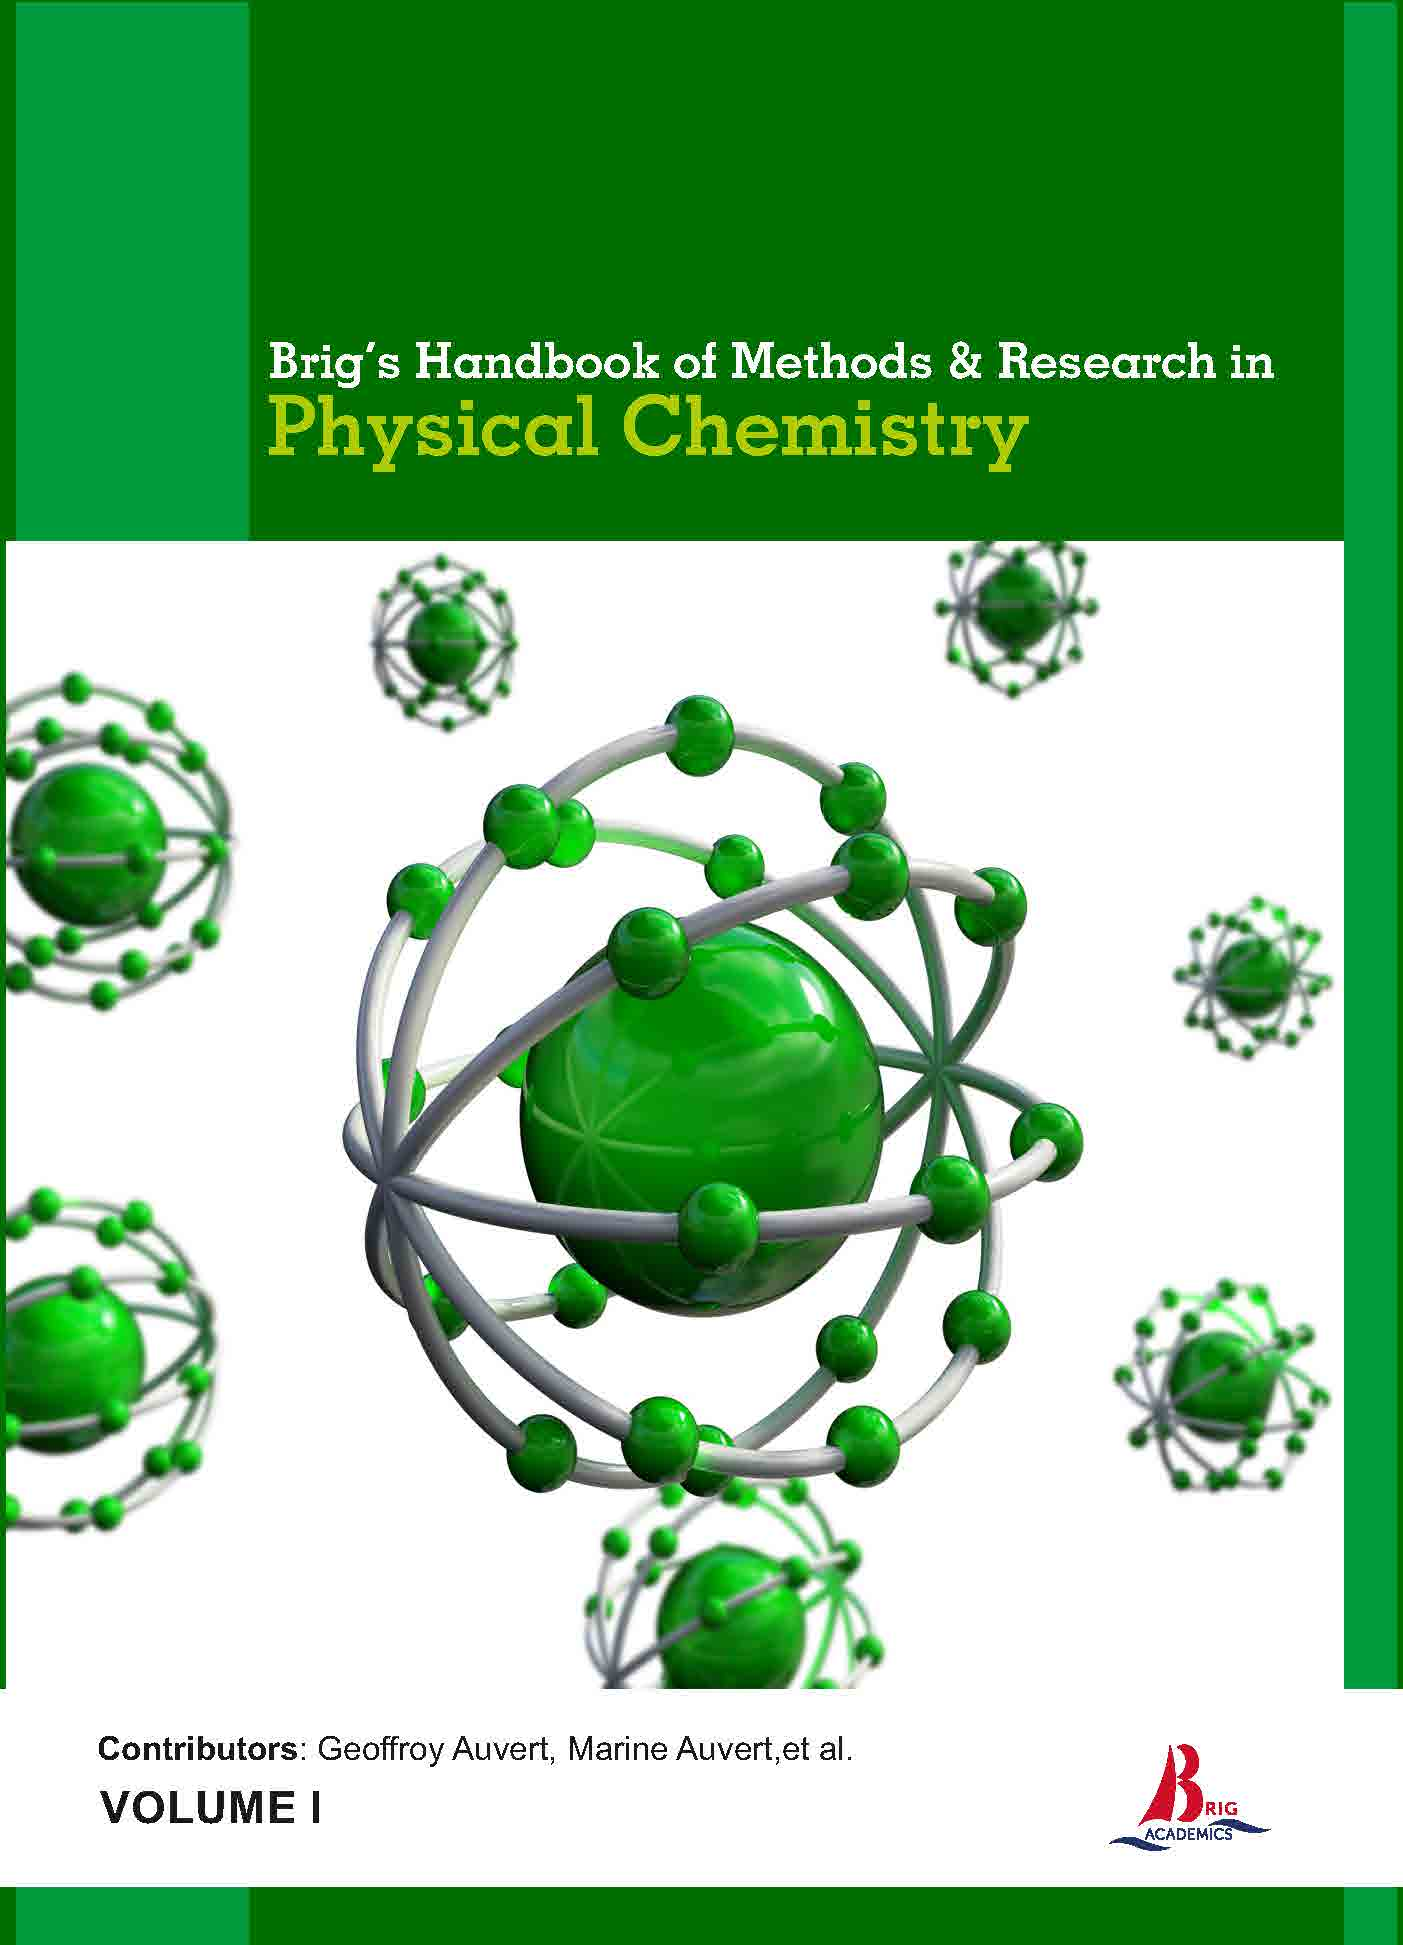 Brig's Handbook of Methods & Research in Physical Chemistry